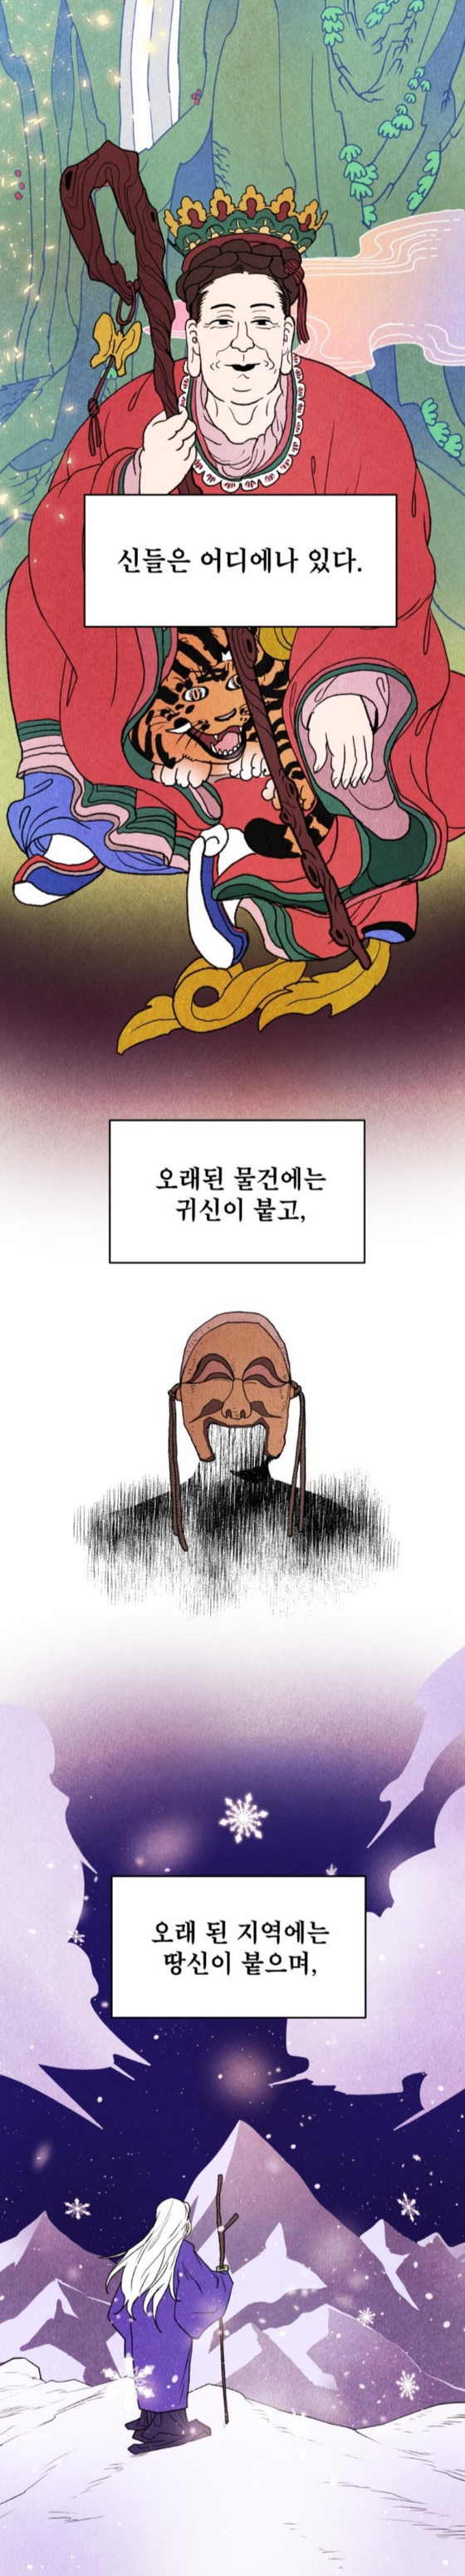 """The introduction from Daum Webtoon's ″Baekro's Kitchen″ (translated) series reads, """"Gods are everywhere. Ghosts stick to old things and gods stick to old lands."""" [SCREEN CAPTURE]"""